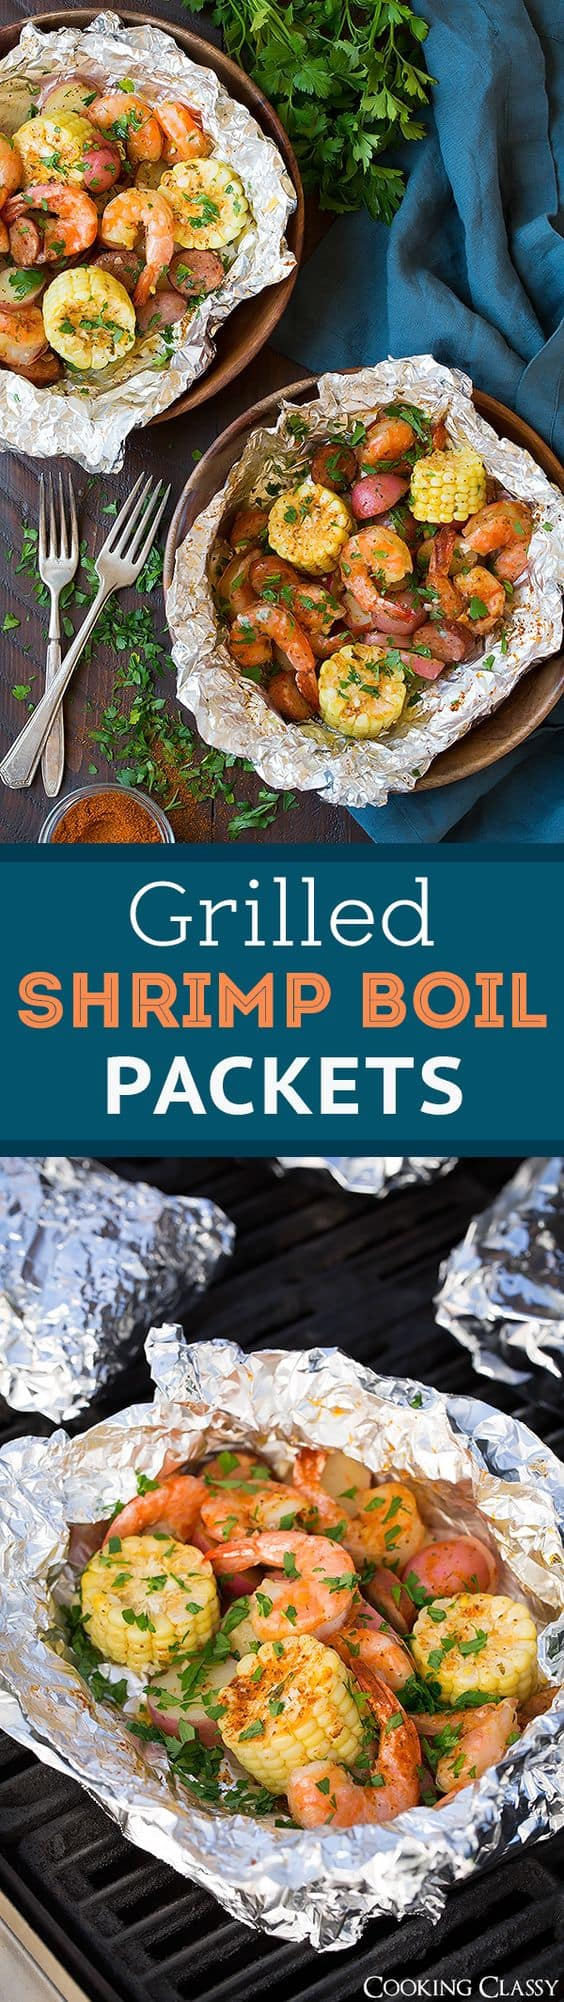 Grilled Shrimp Boil Packets by Cooking Classy | Grilling Hacks and Delicious Recipes